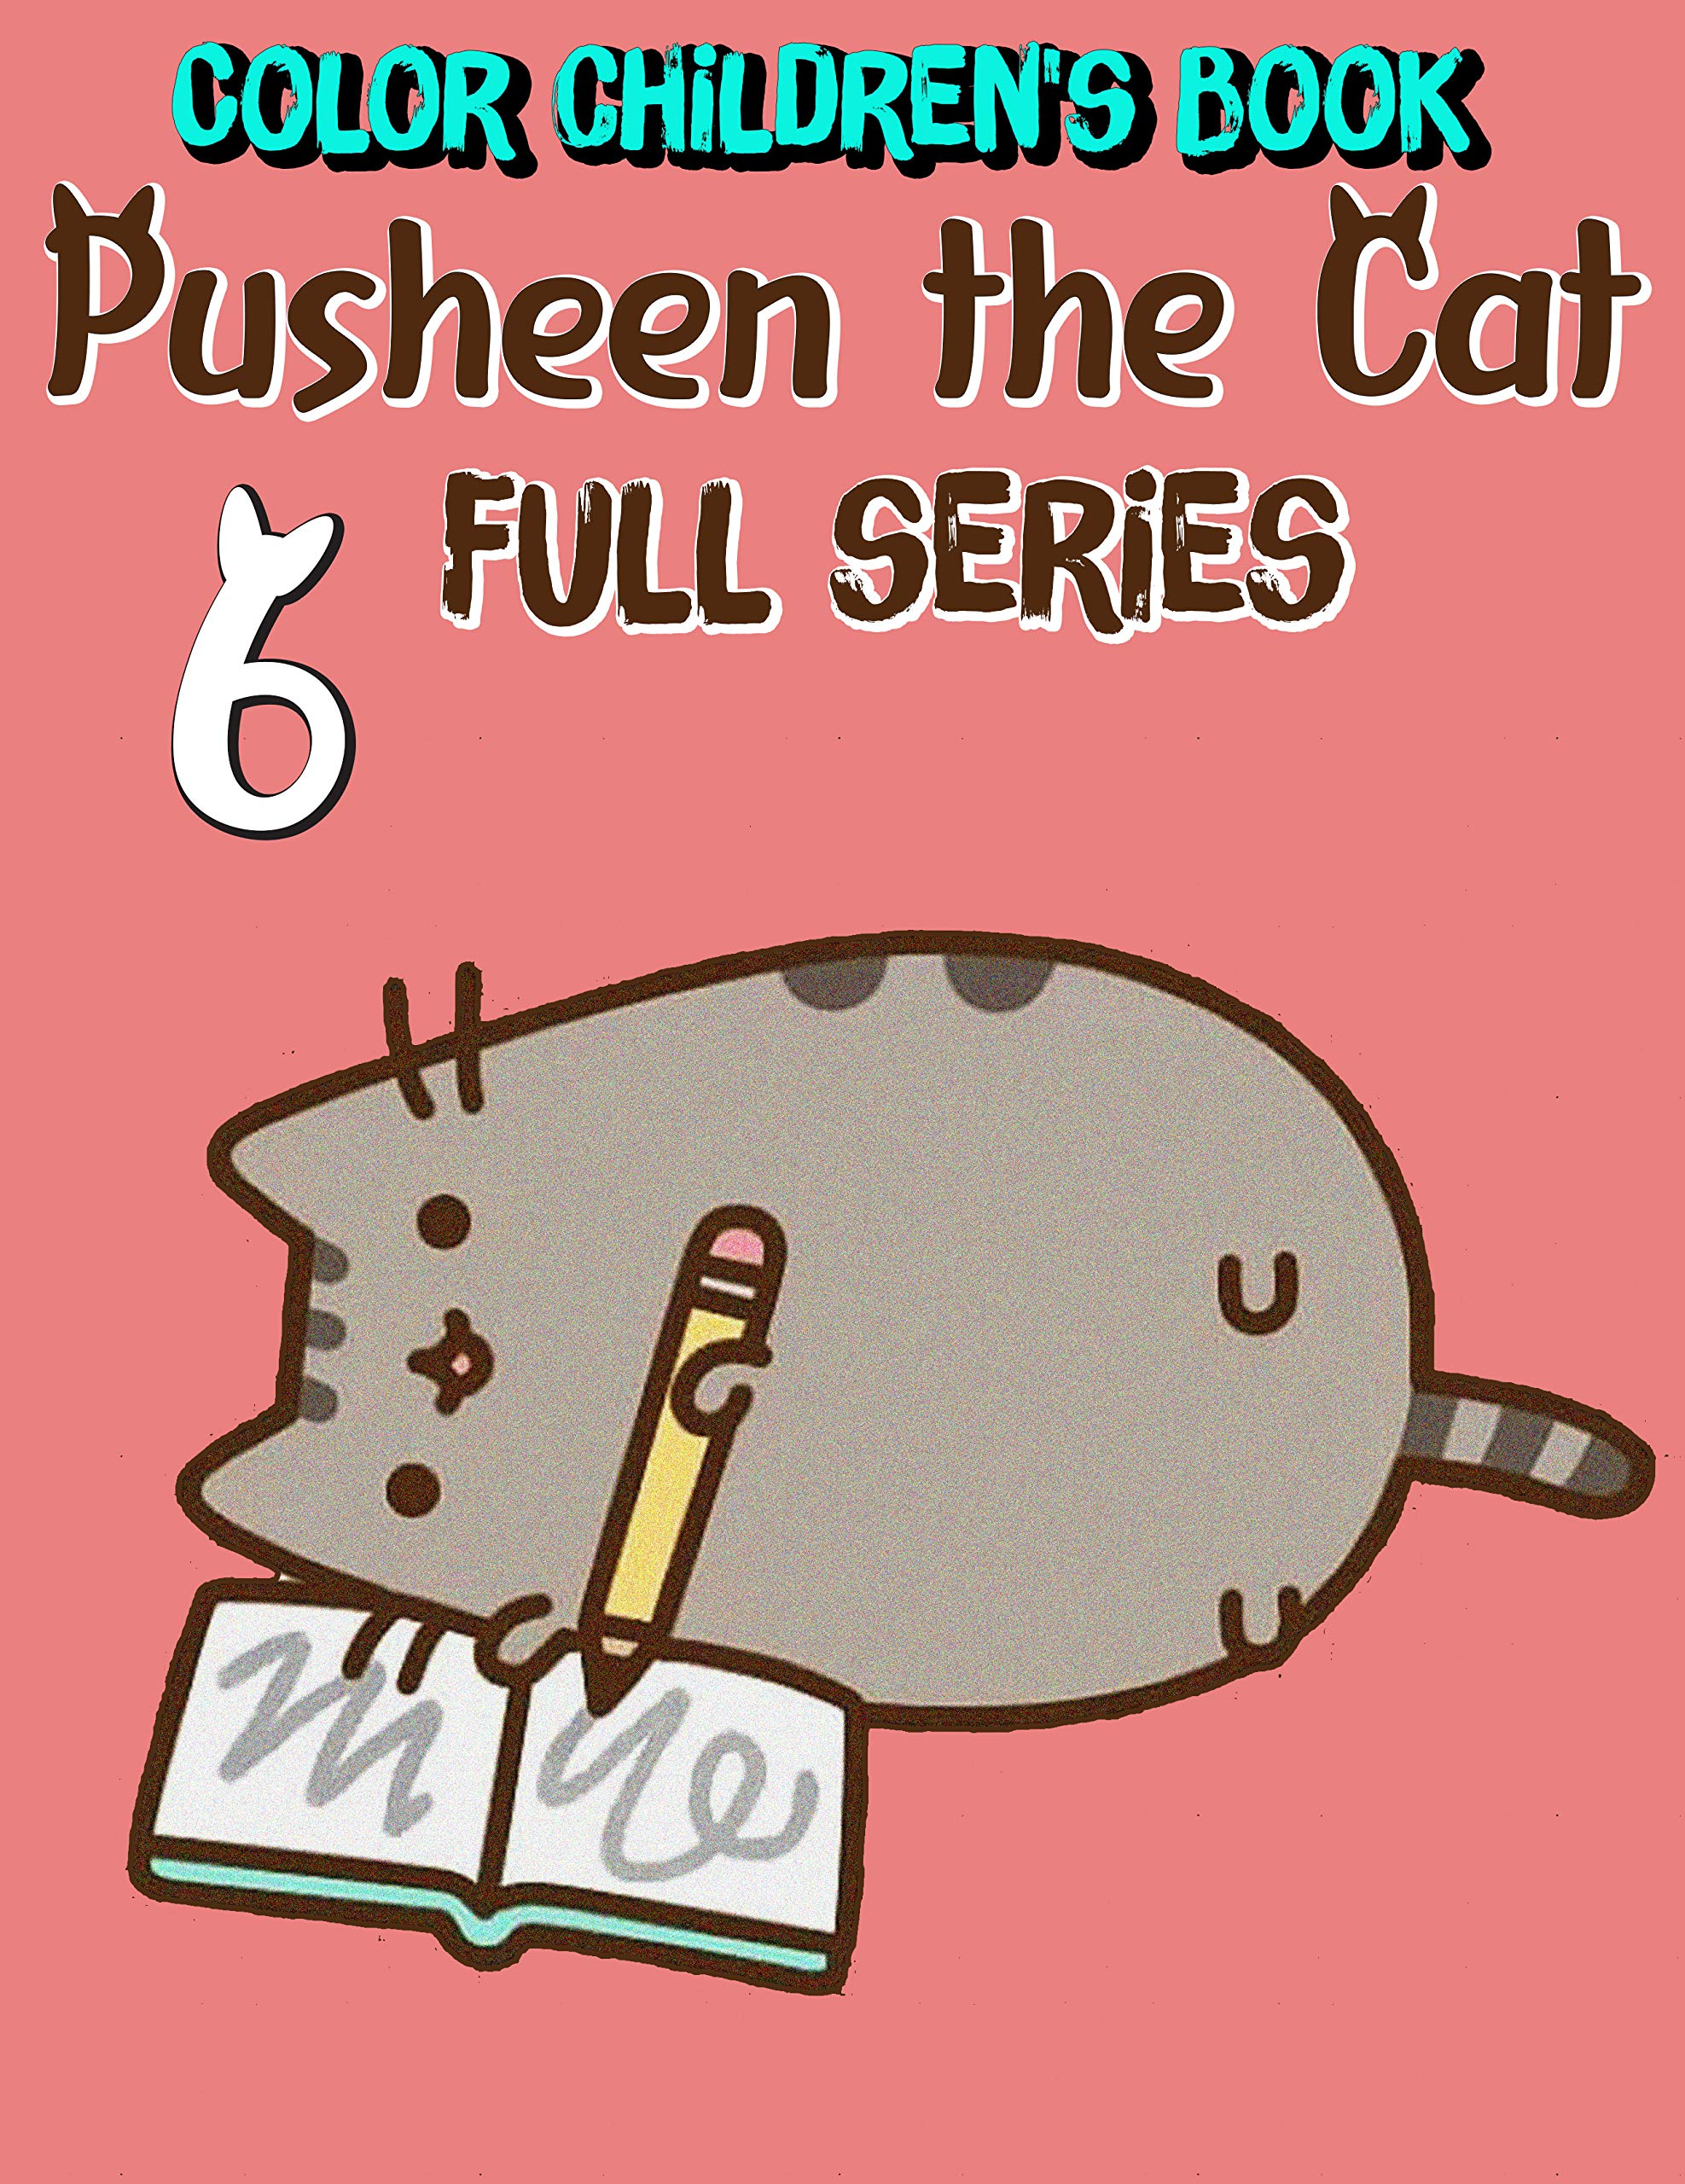 Color children's book Pusheen the Cat Full series: Funny Pusheen the Cat Limited Edition Volume 6